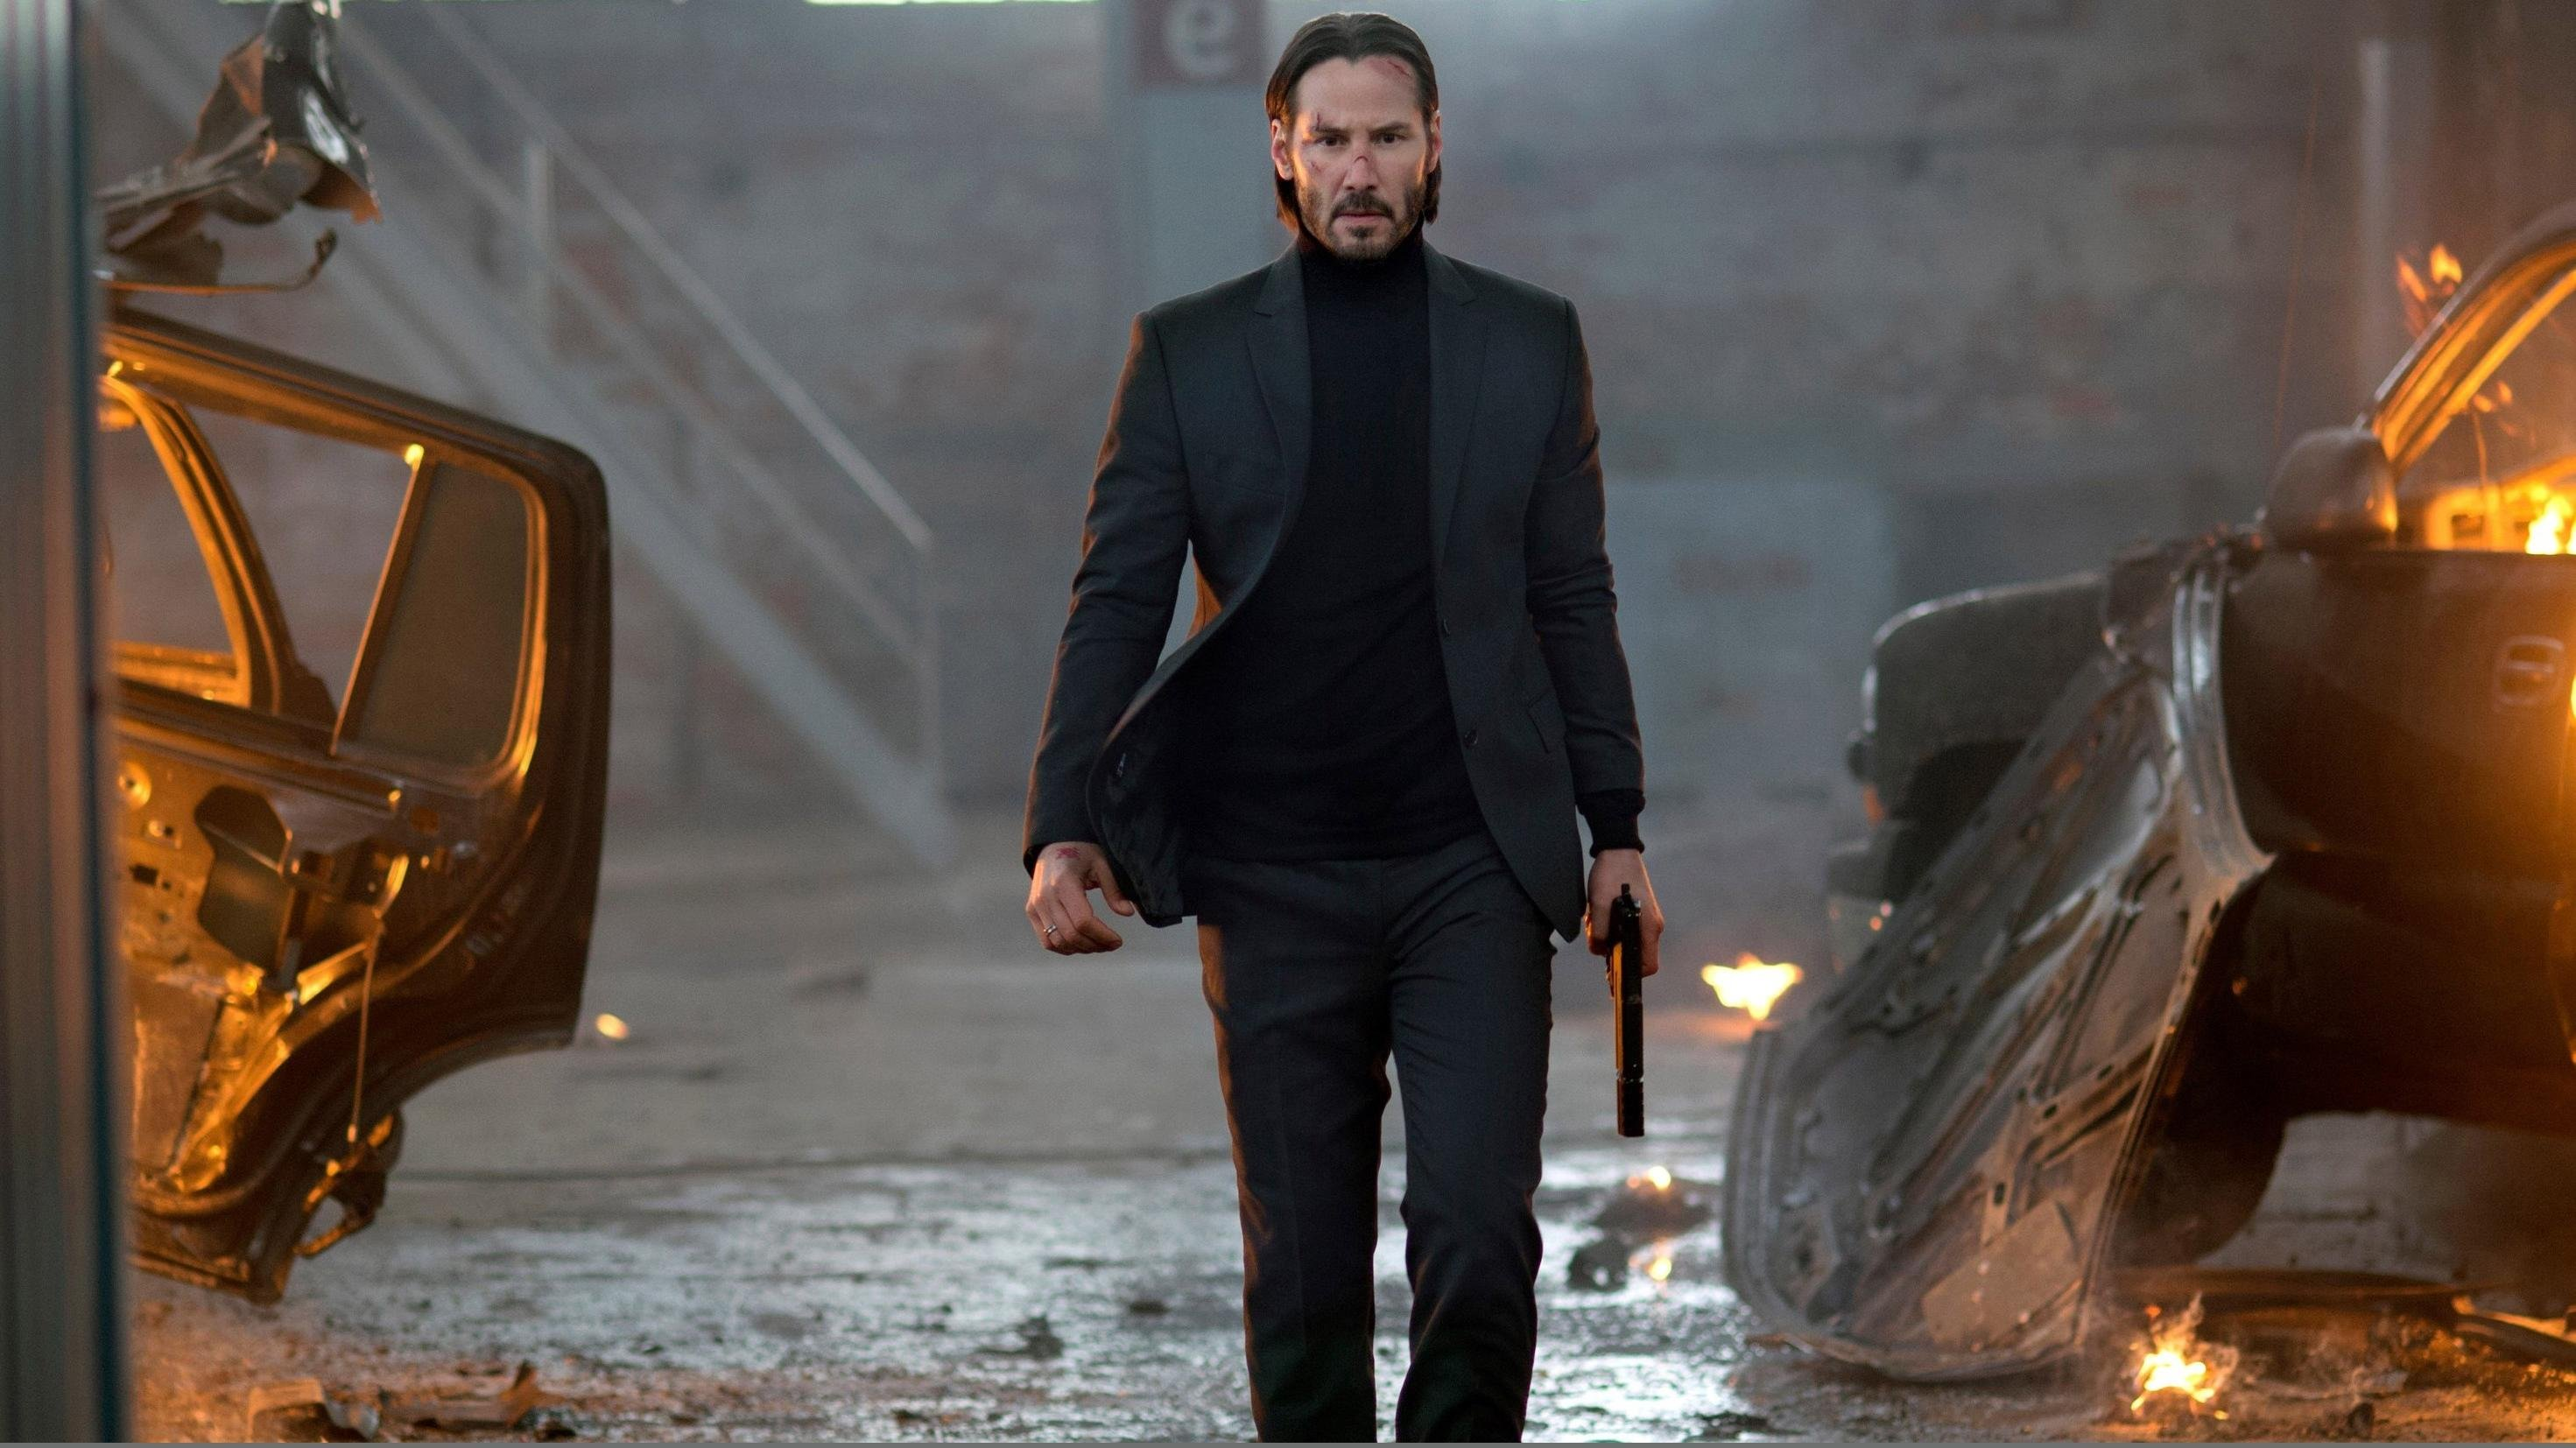 6. 'The John Wick' movies are always a great action movie to watch. But the third one is definitely the most sensational. The aggressive fighting scenes will blow your mind.